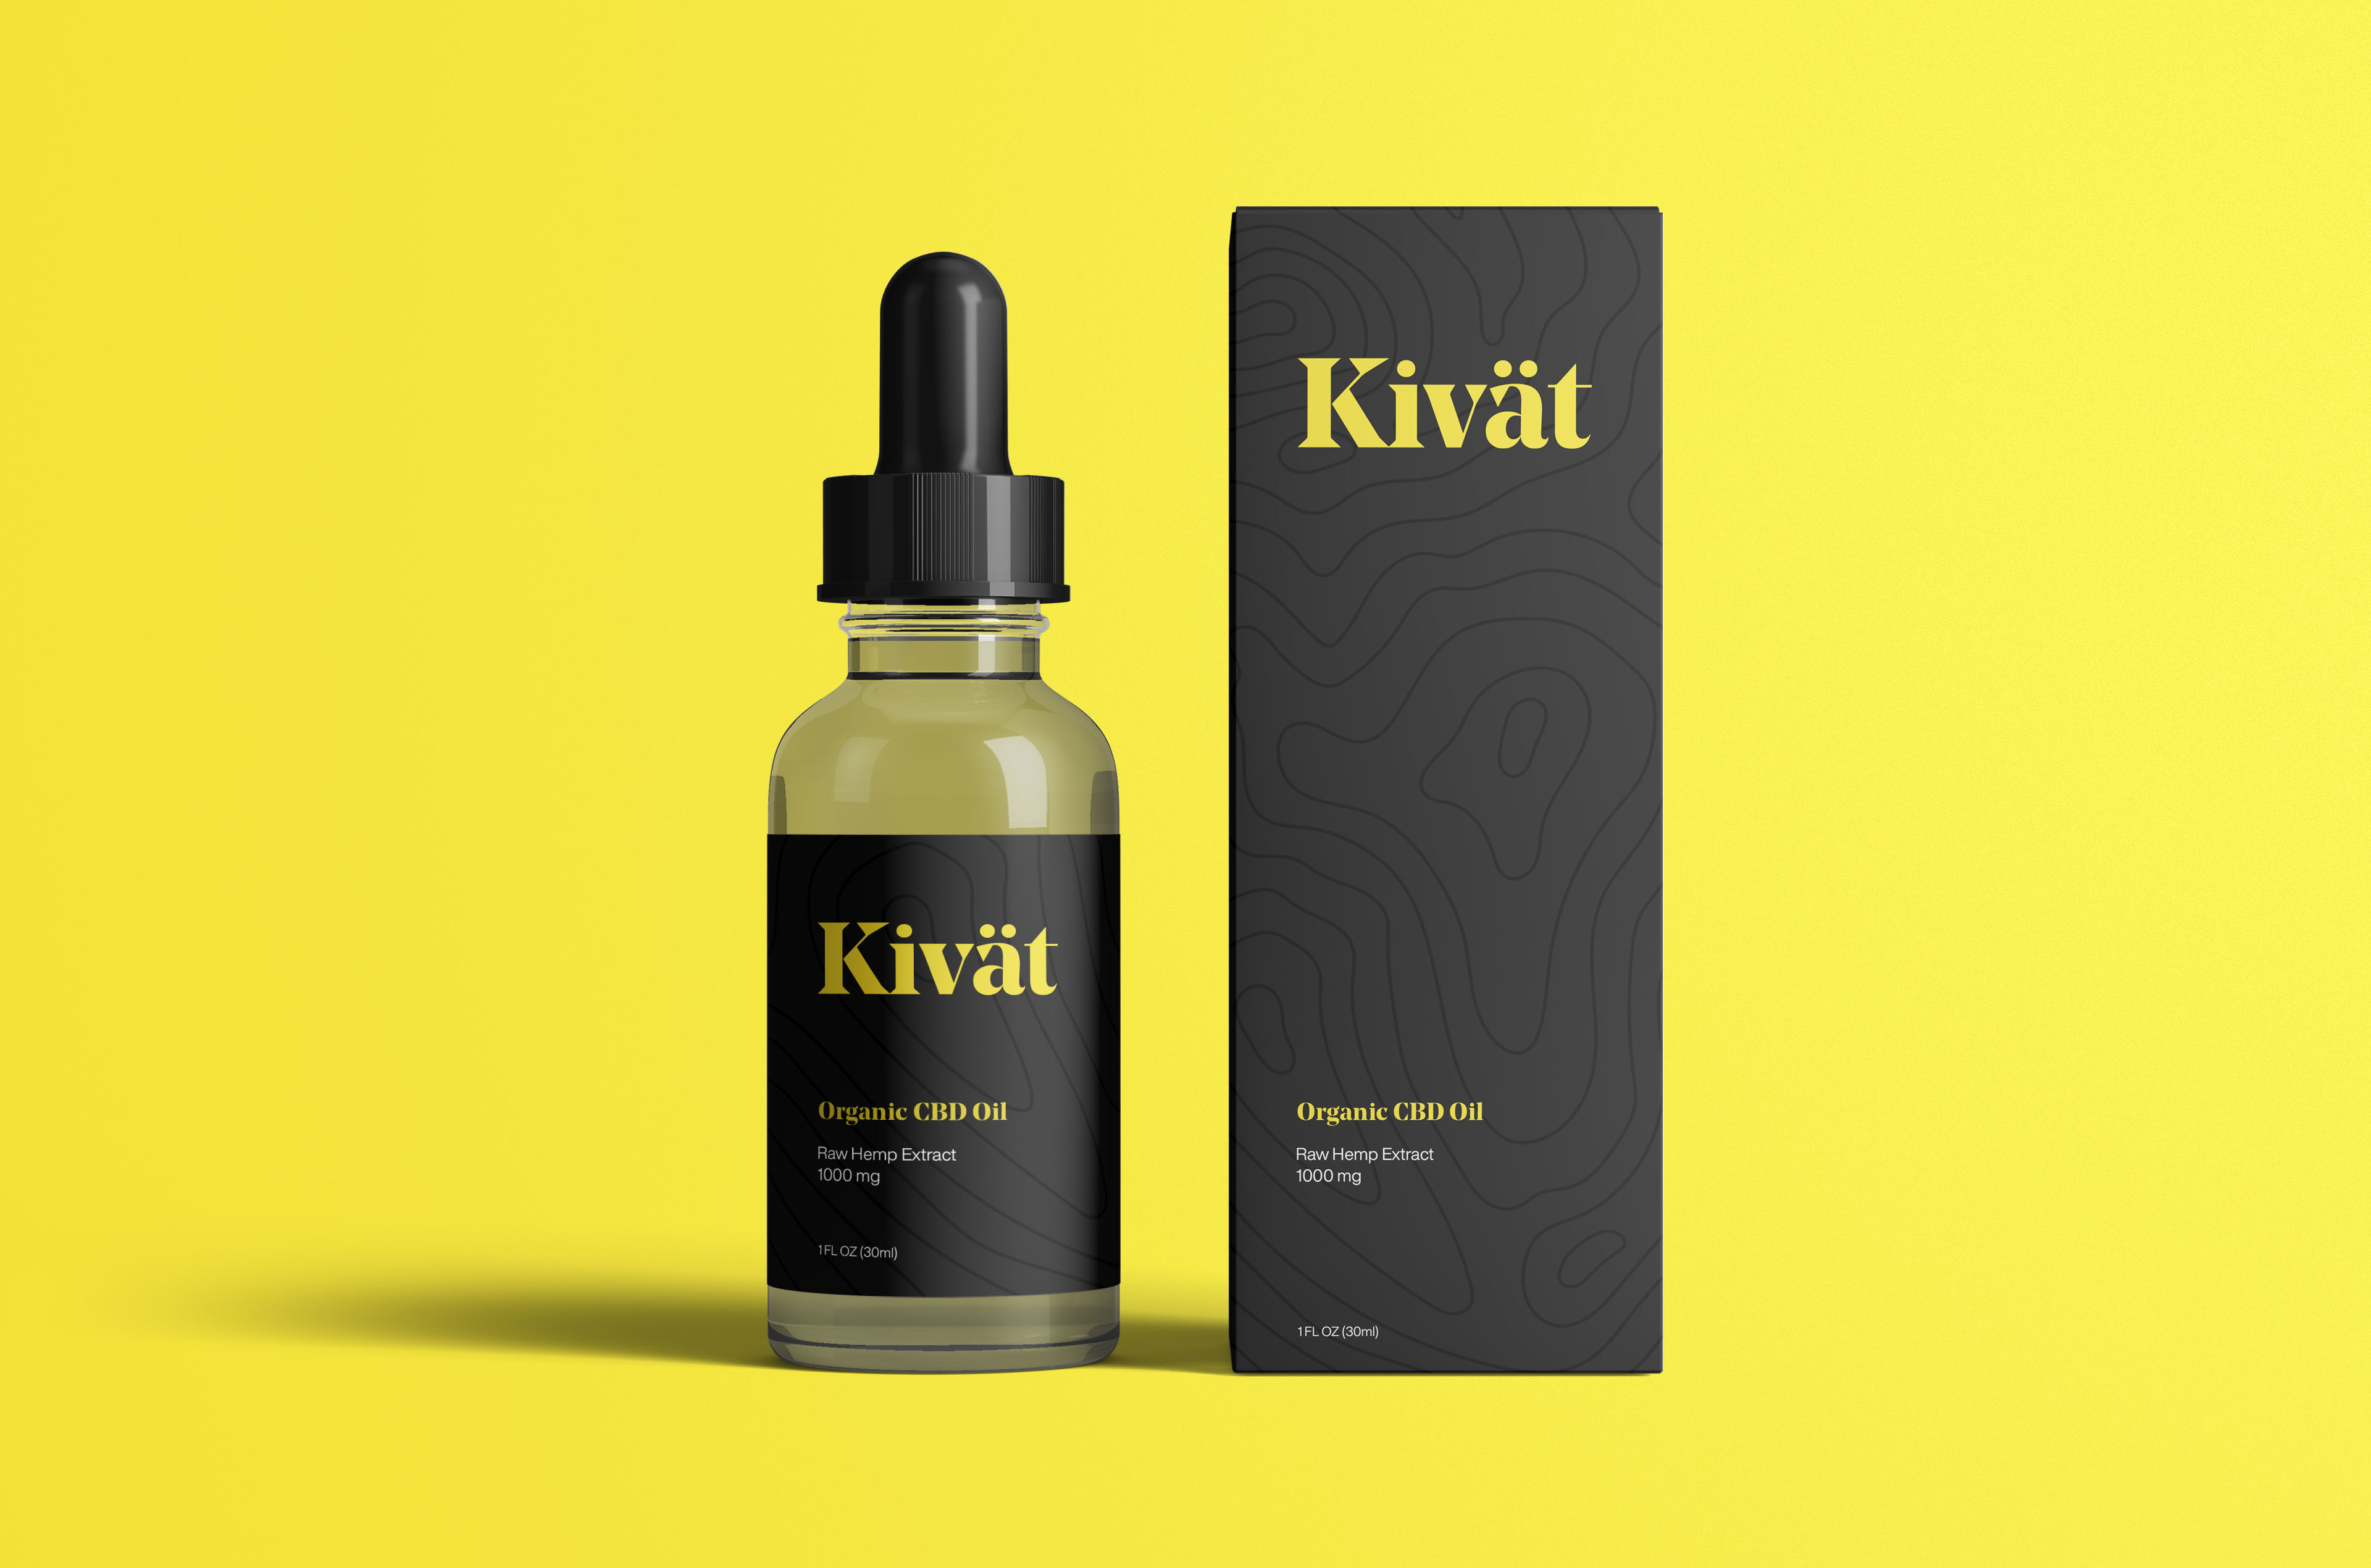 The objective for this project was to design the logo and packaging design for Kivat CBD Oil. Kivat is a brand of organic CBD Oil that was started in mid 2020 during the Covid-19 pandemic. At their initial launch, their packaging was printed on sticker labels and applied to the bottle by hand. We worked together to develop a new logo and proper packaging and boosted their sales by over 400% after implementing the new designs.